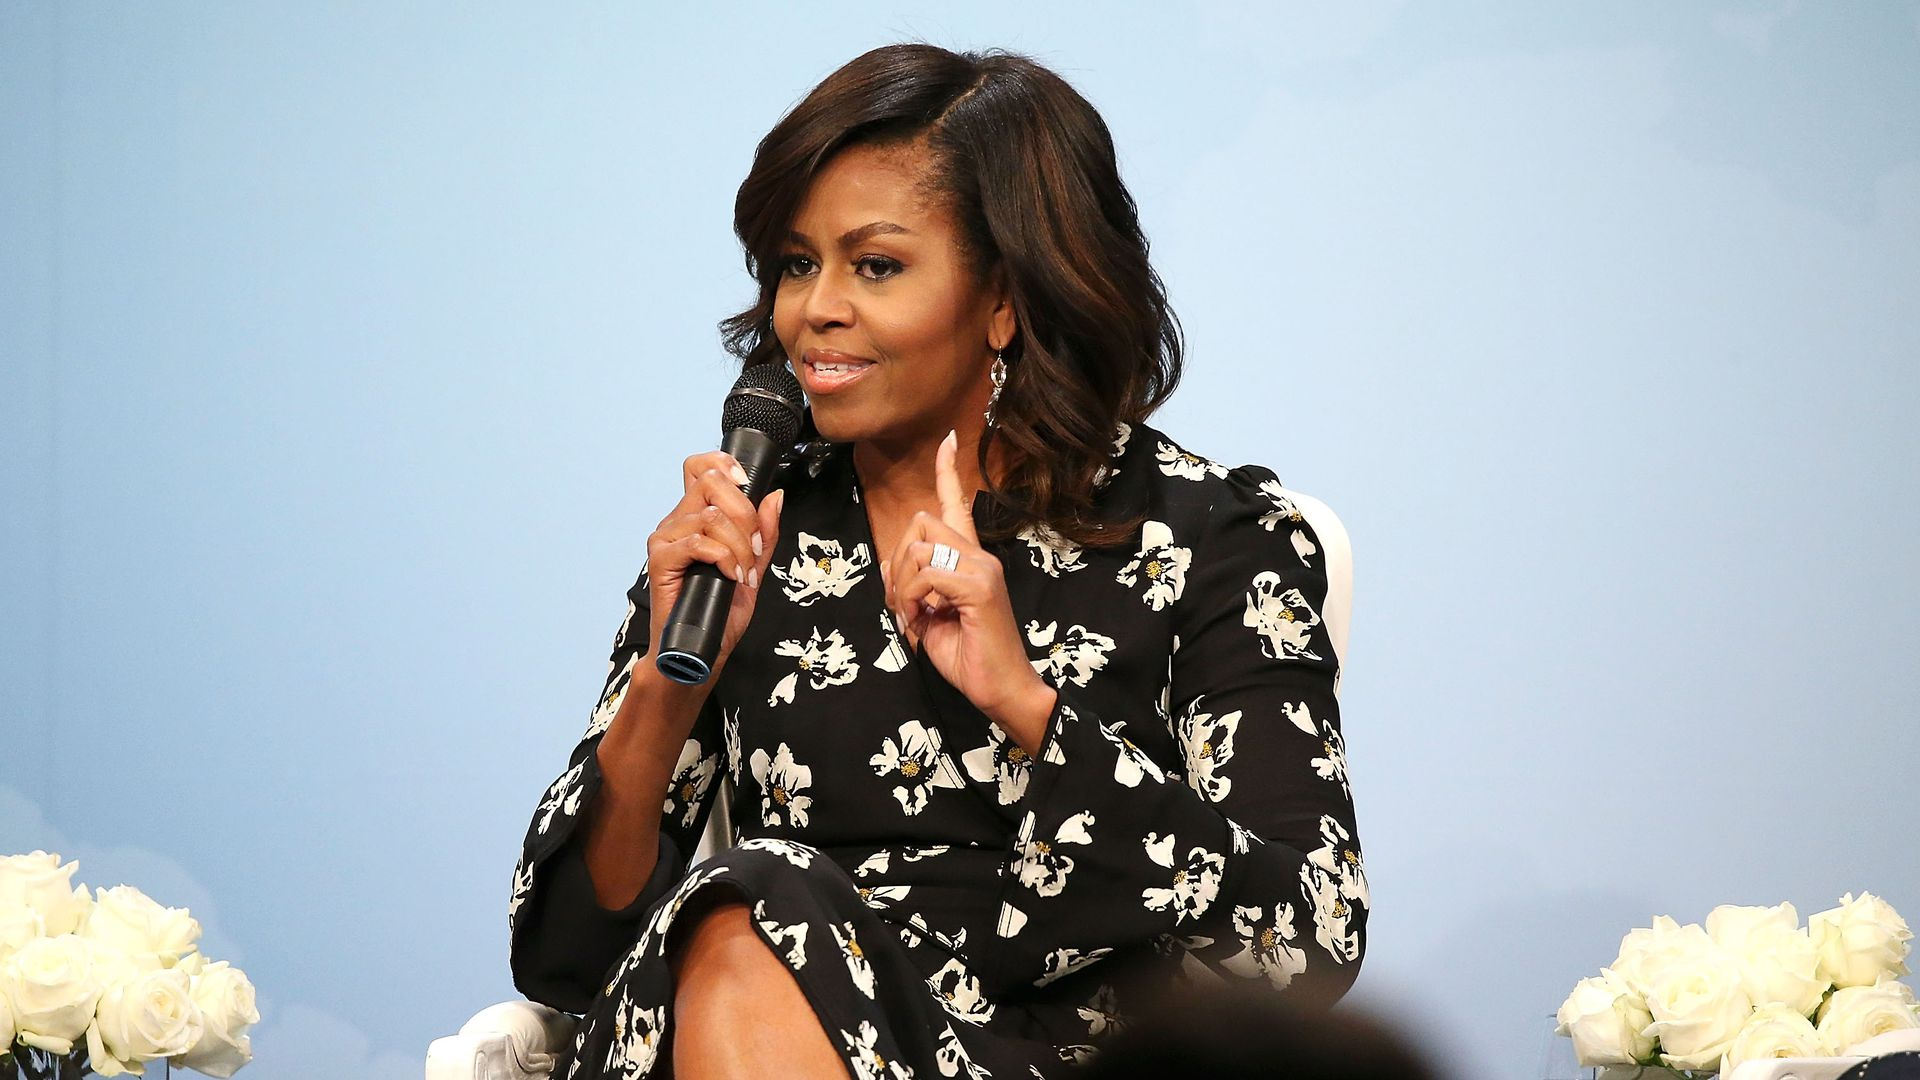 In this image, Michelle Obama sits and speaks into a microphone.